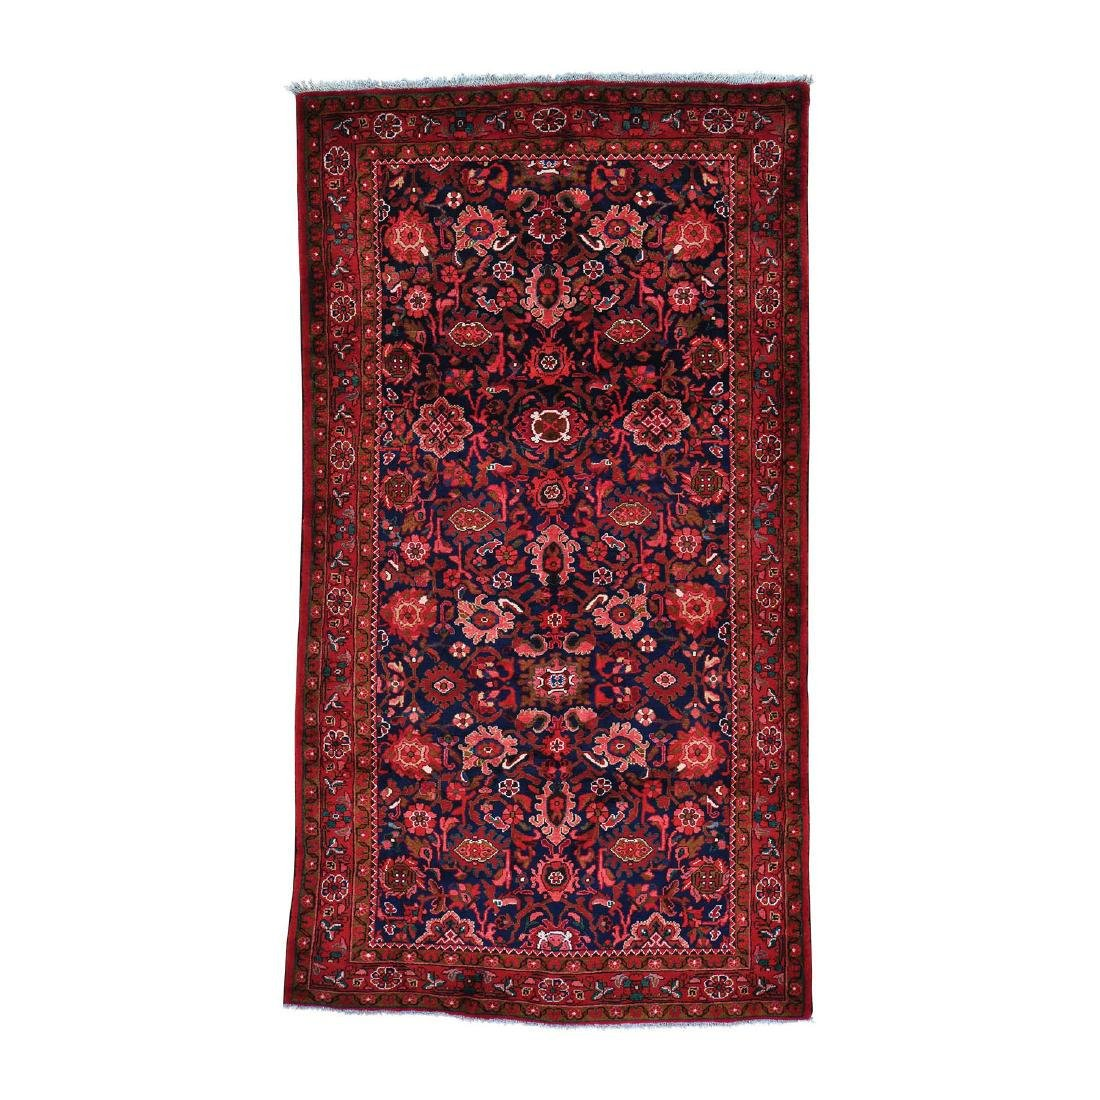 Persian Mahal Wide Runner Wool Hand Knotted Rug 5.4x9.8